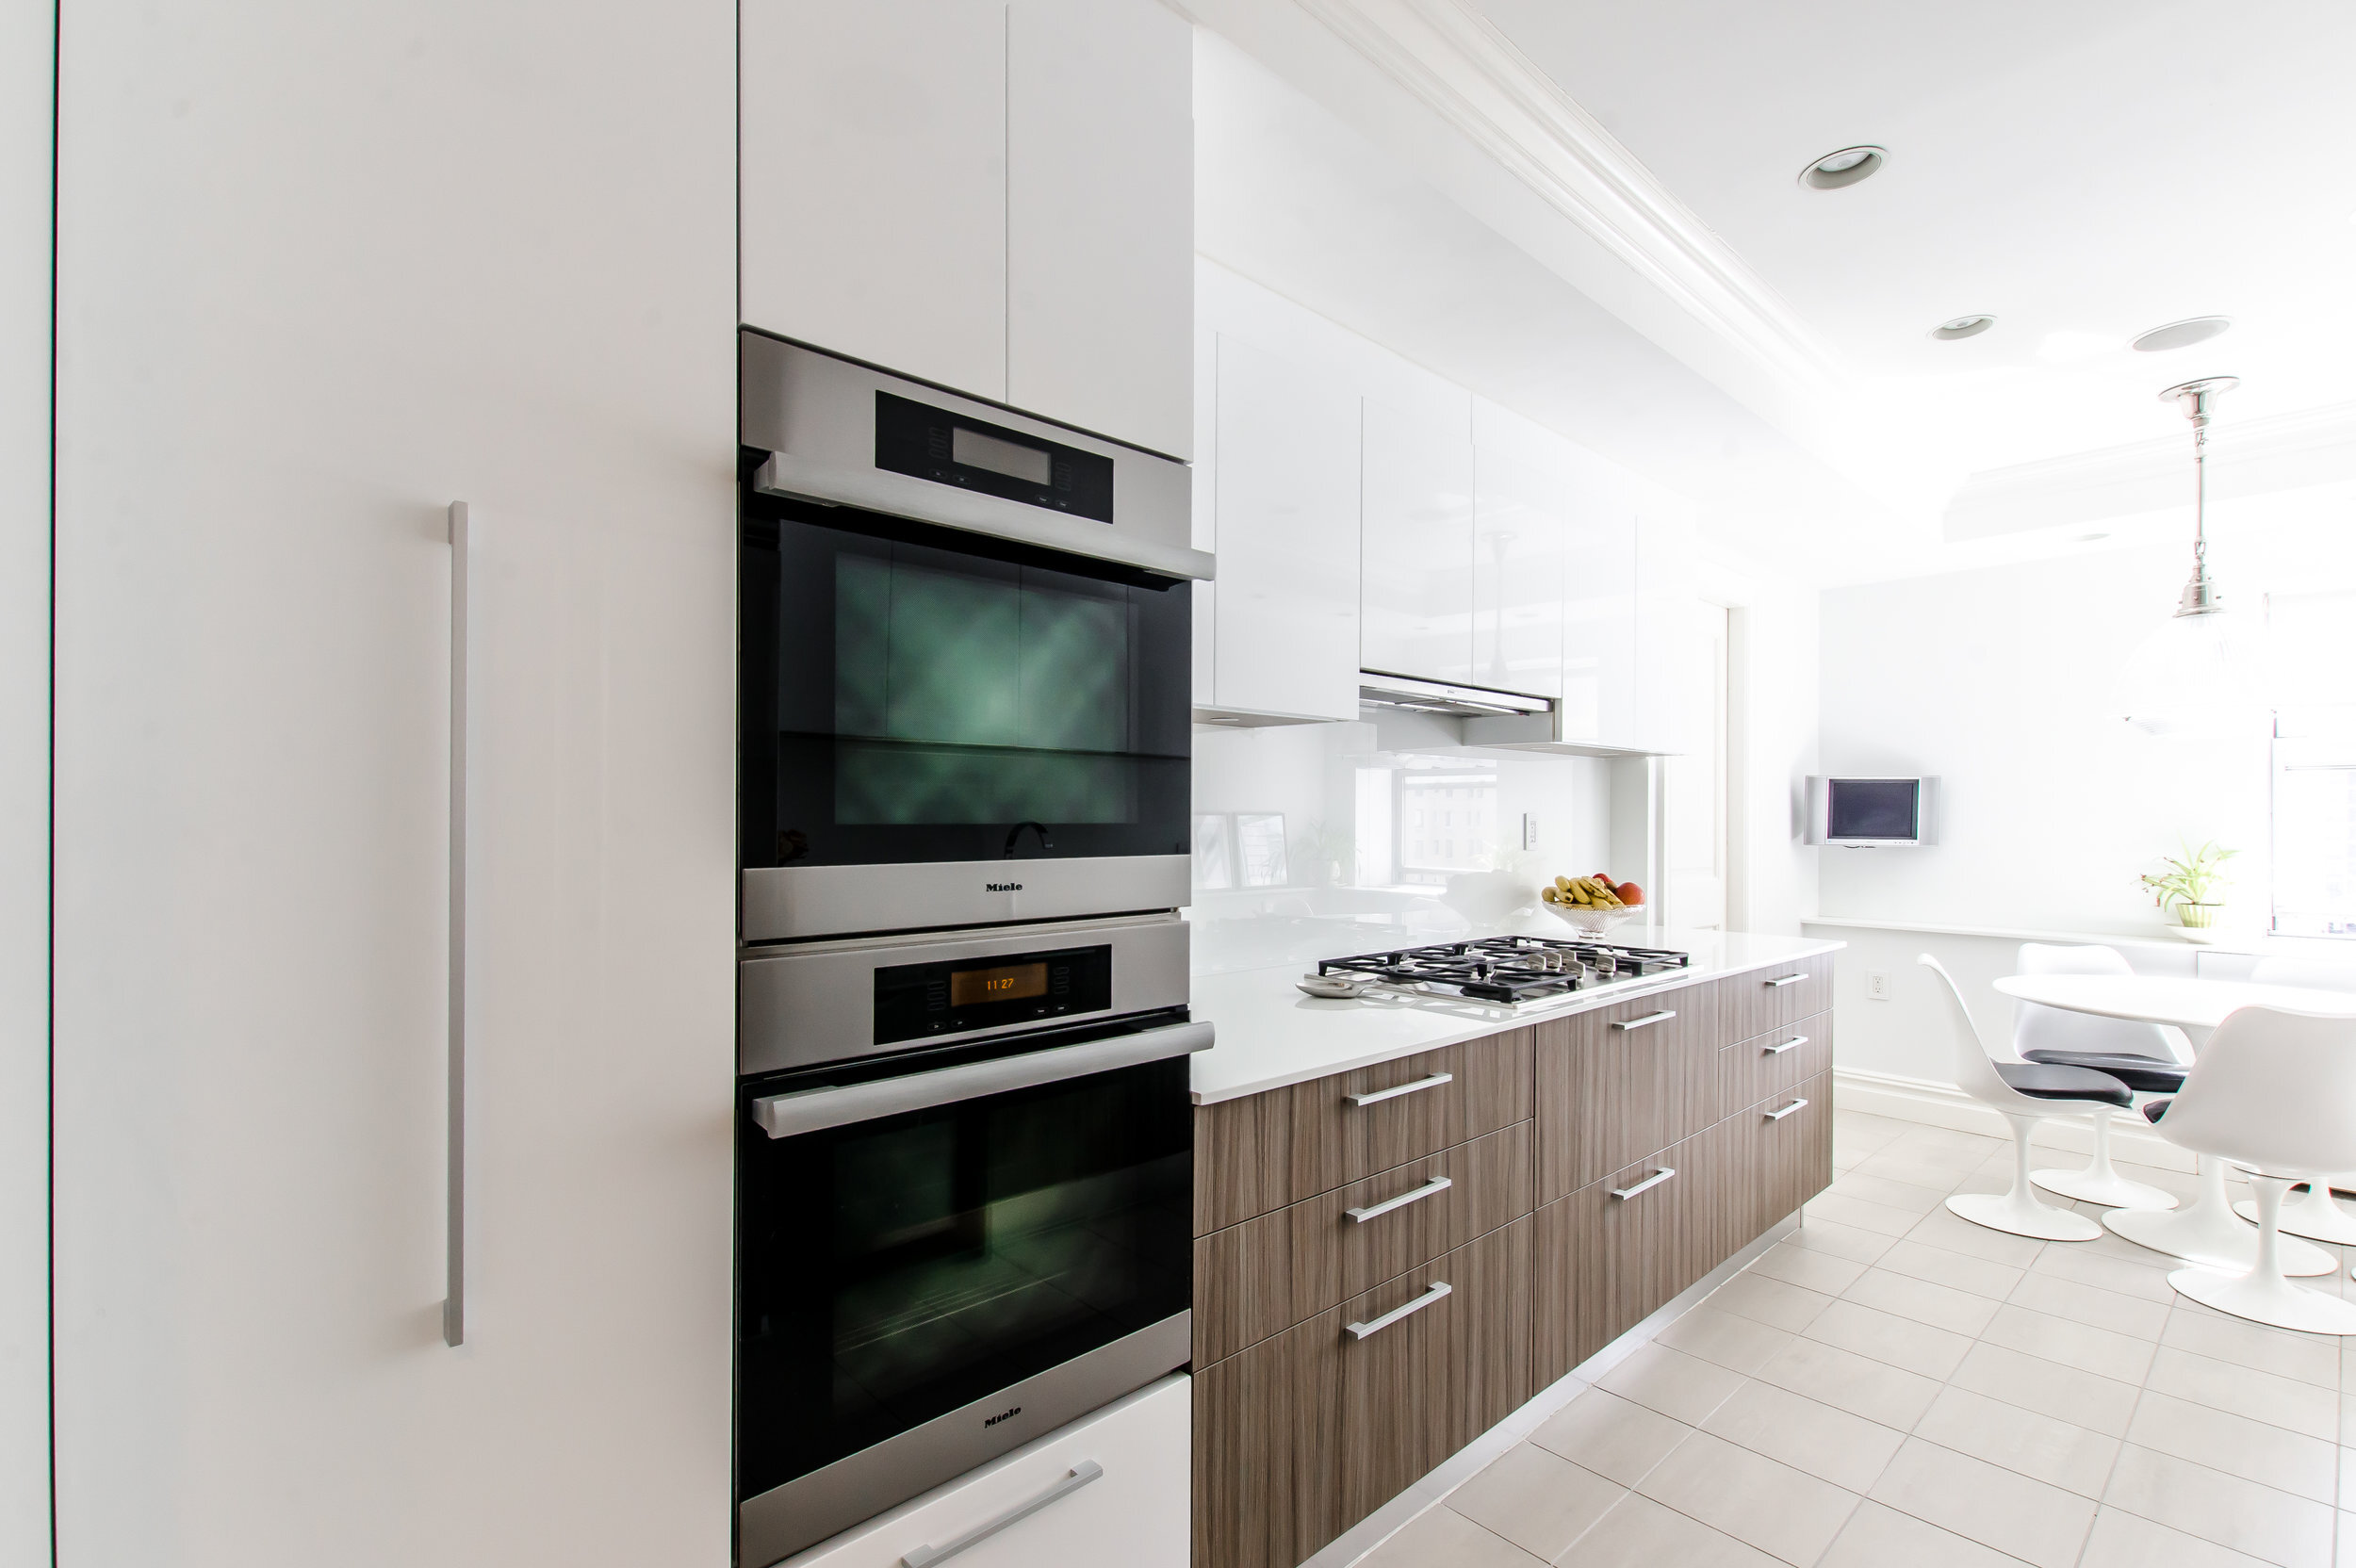 residential-projects-ParkAve-residence1-comp3.jpg